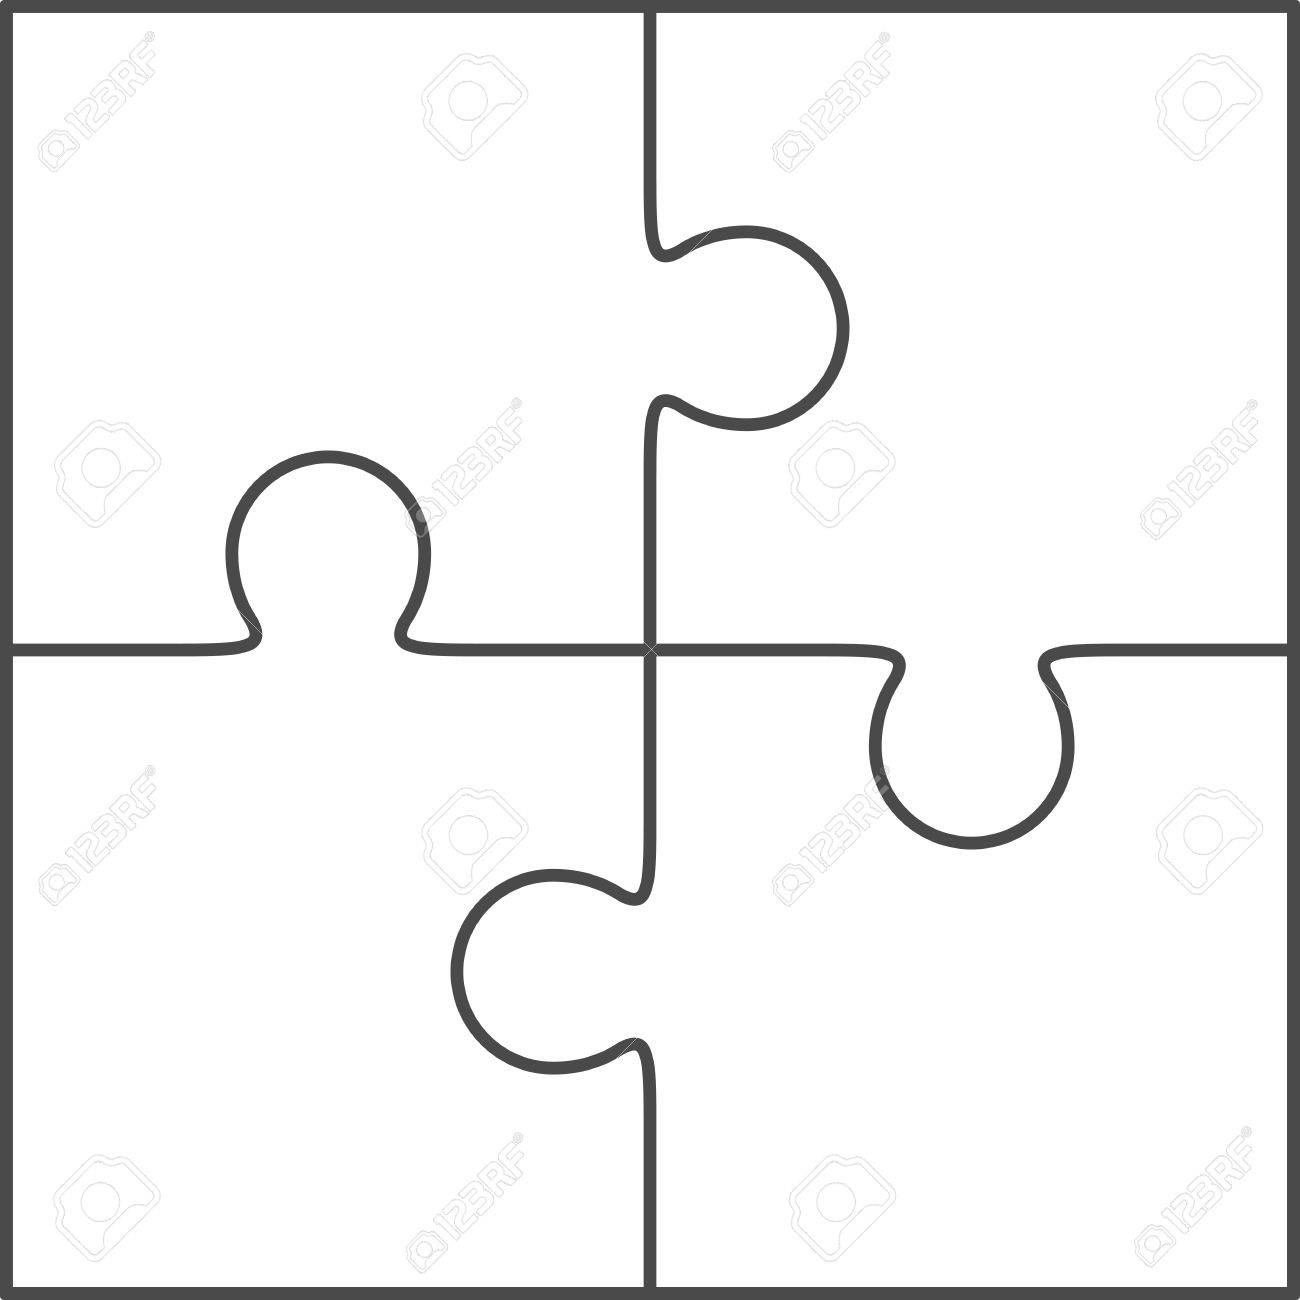 Jigsaw Puzzle Vector Blank Simple Template 2x2 Four Pieces Stock